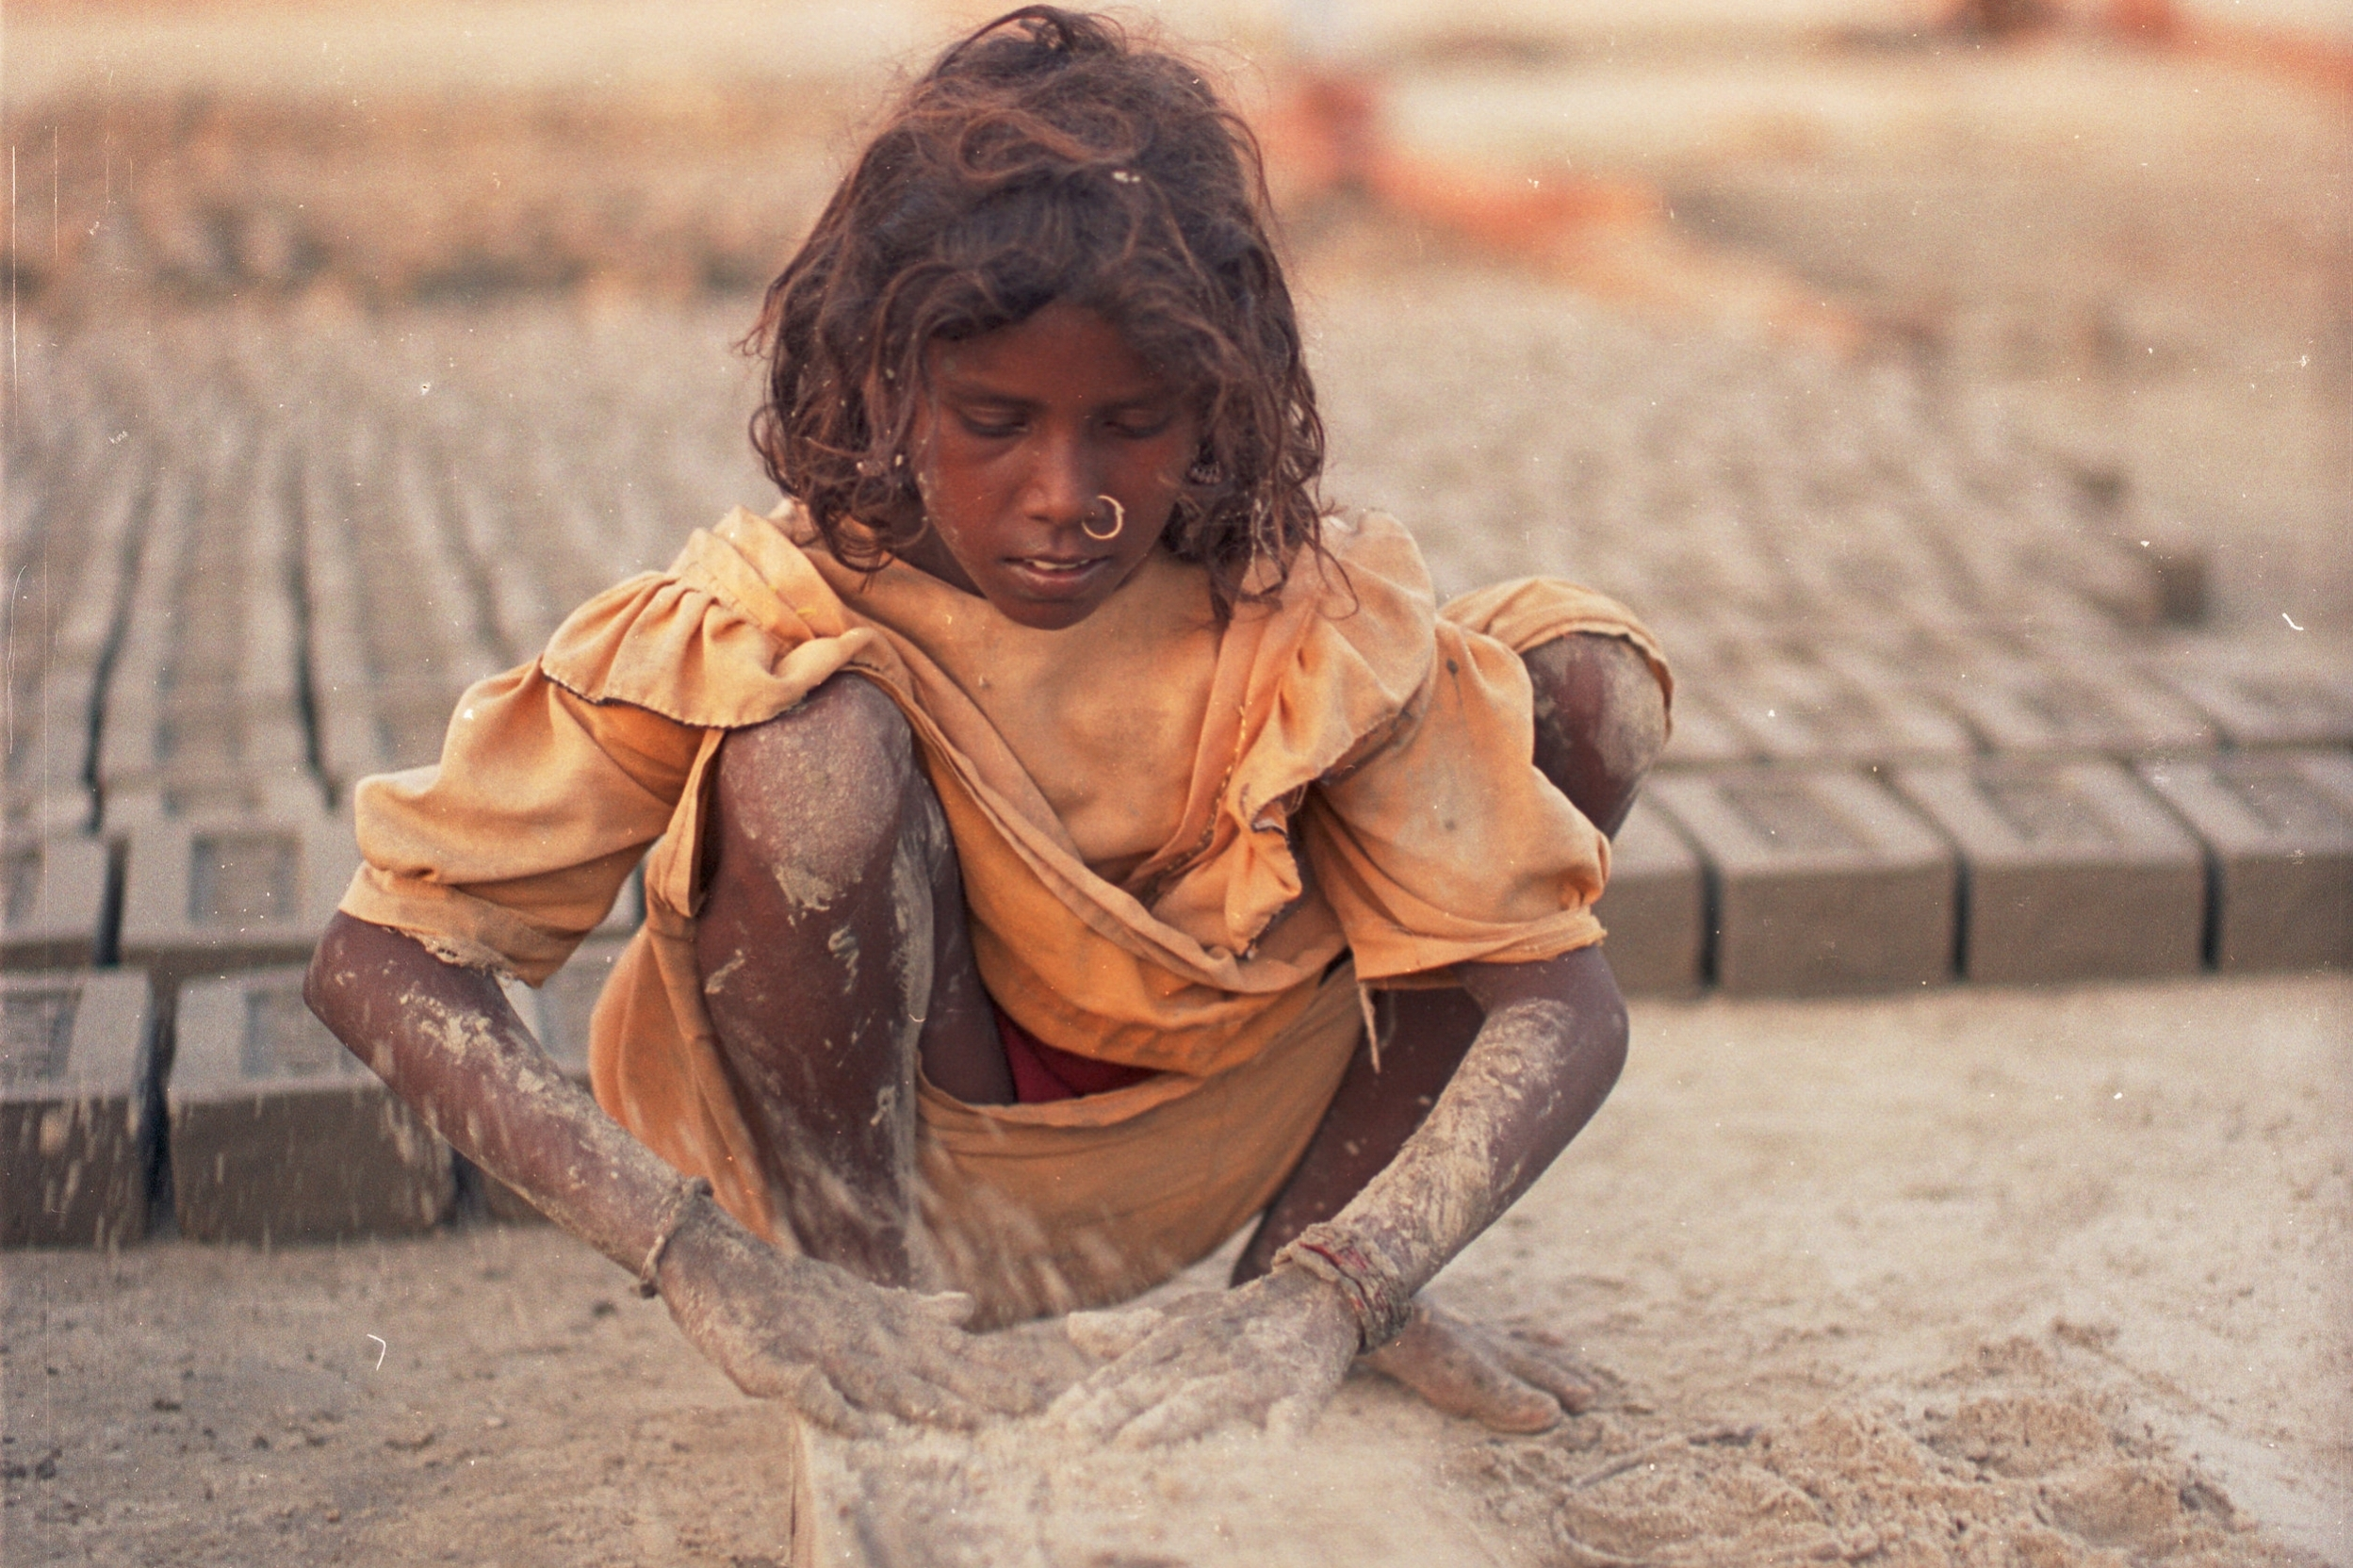 INDIA: BRICKMAKERS - Thousands of brick kilns line the riverbanks in Bengal and the surrounding states of India. The families that work here are exploited 12-16 hours a day, 7 days a week. ©Robin Romano